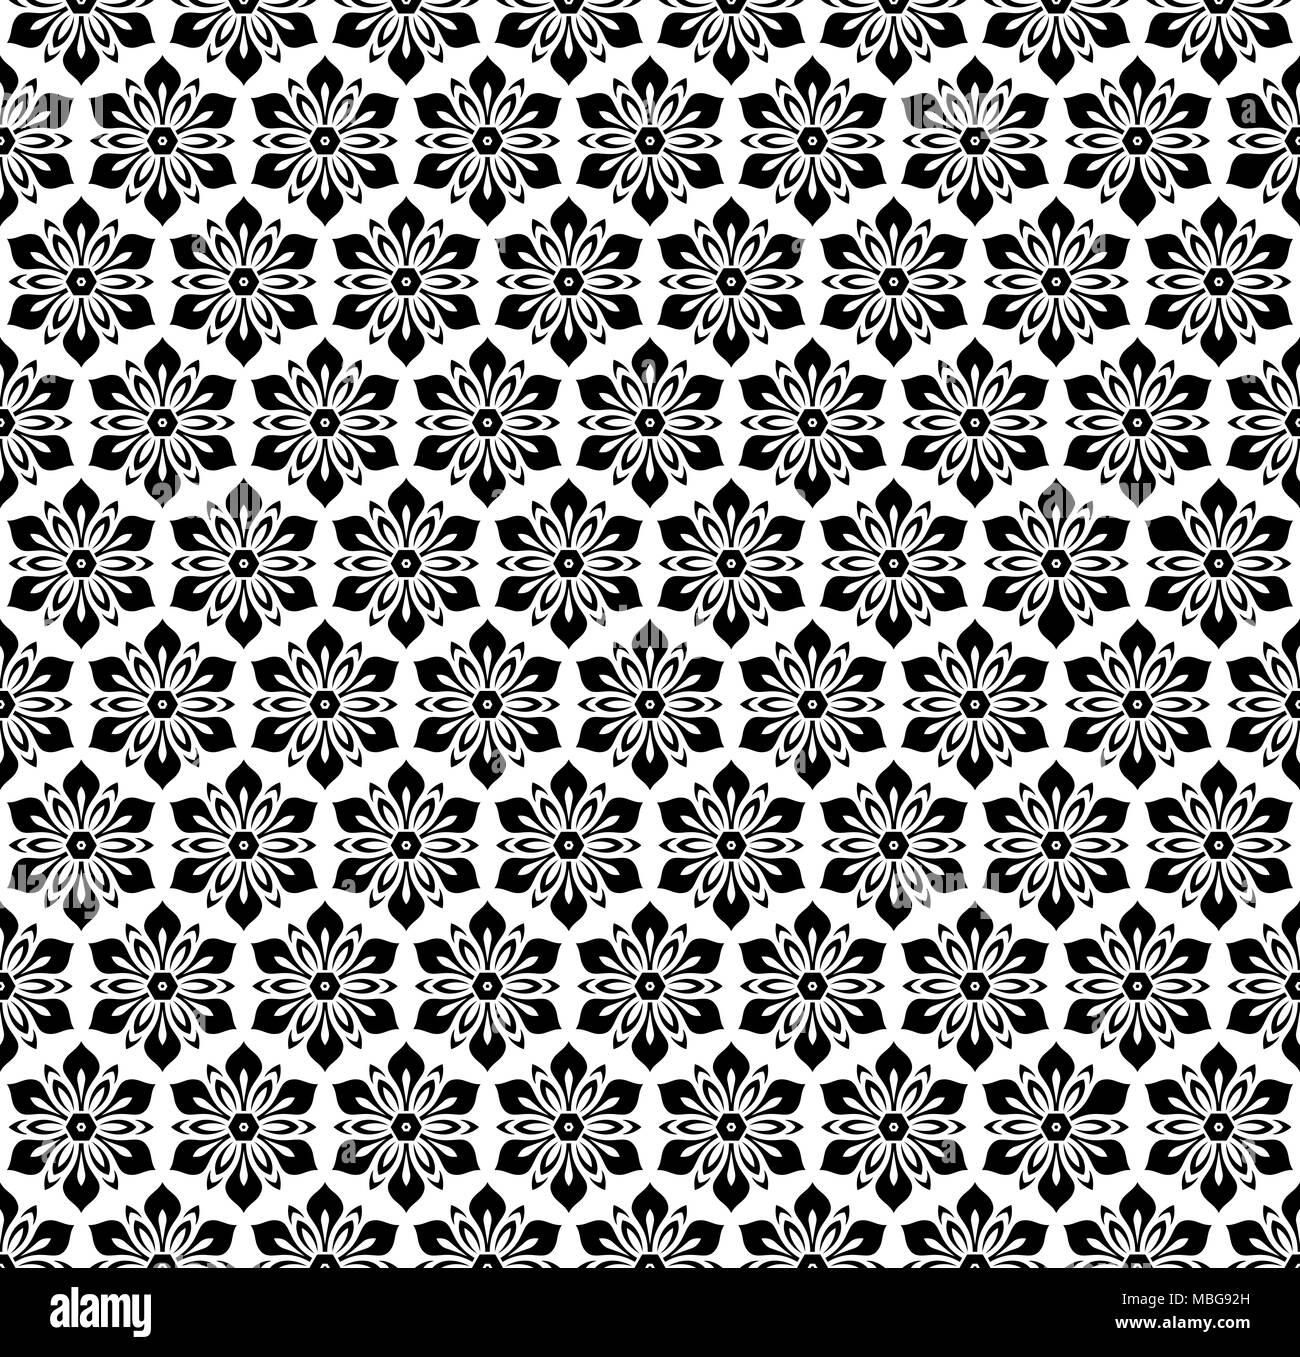 Floral Black And White Ornament Seamless Abstract Classic